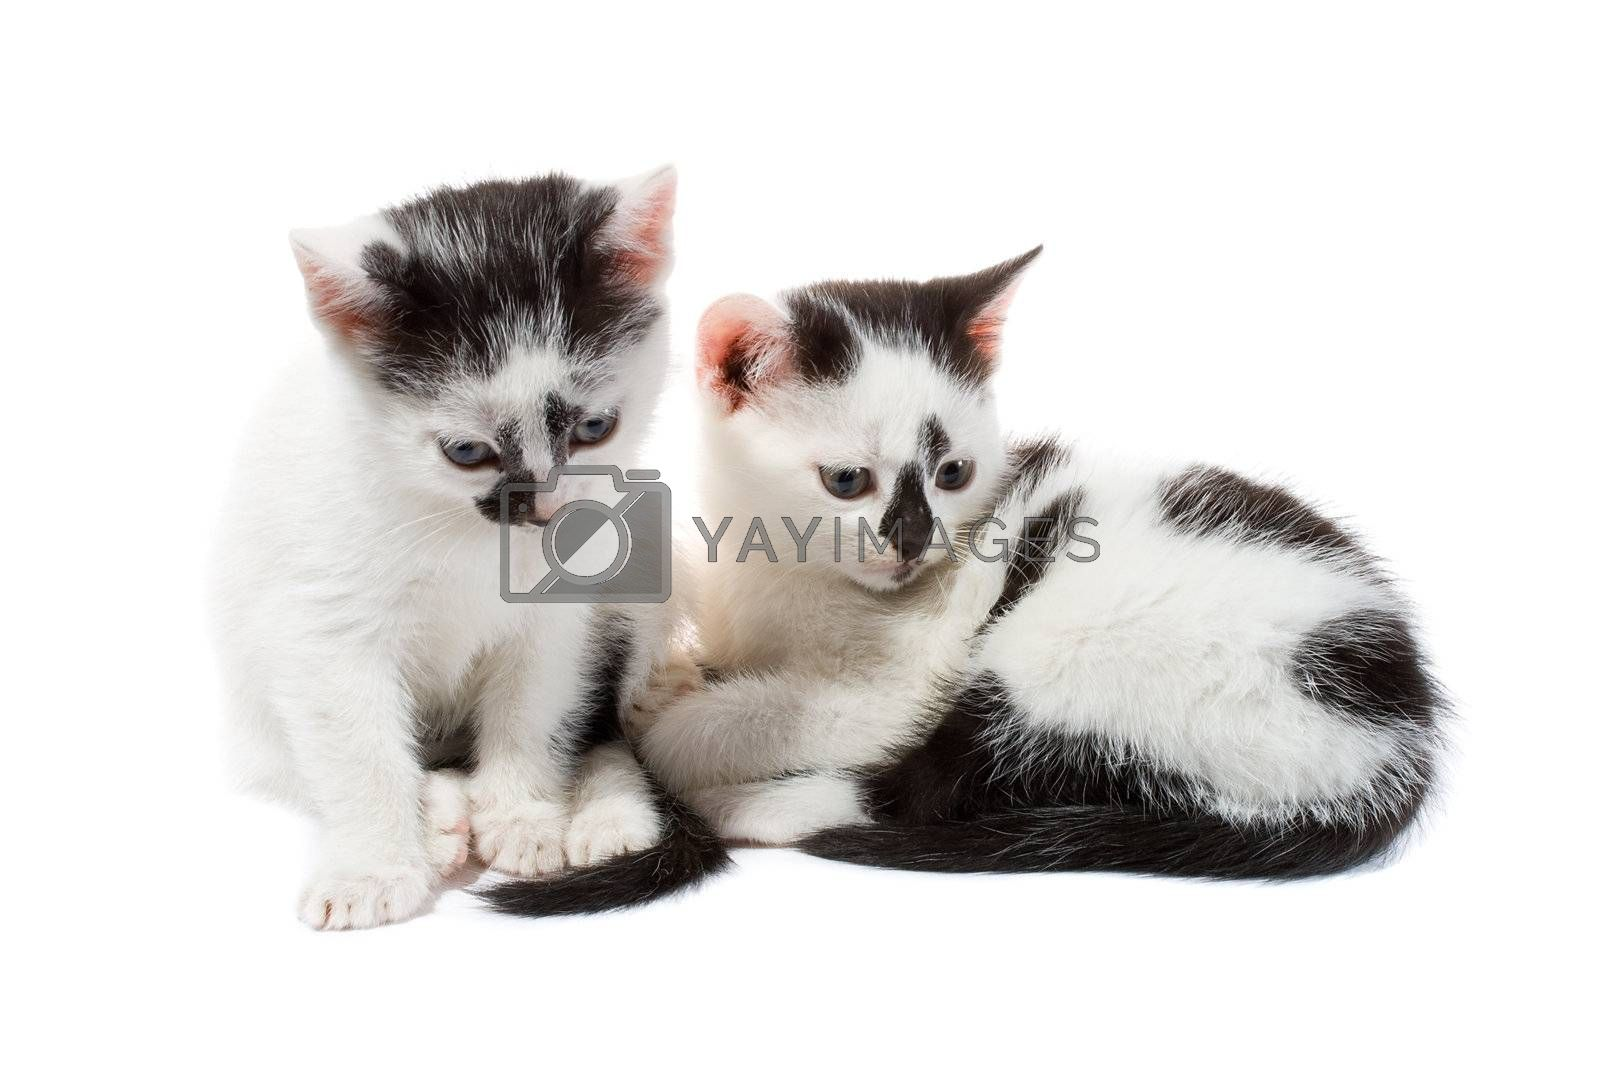 black and white kittens by Alekcey